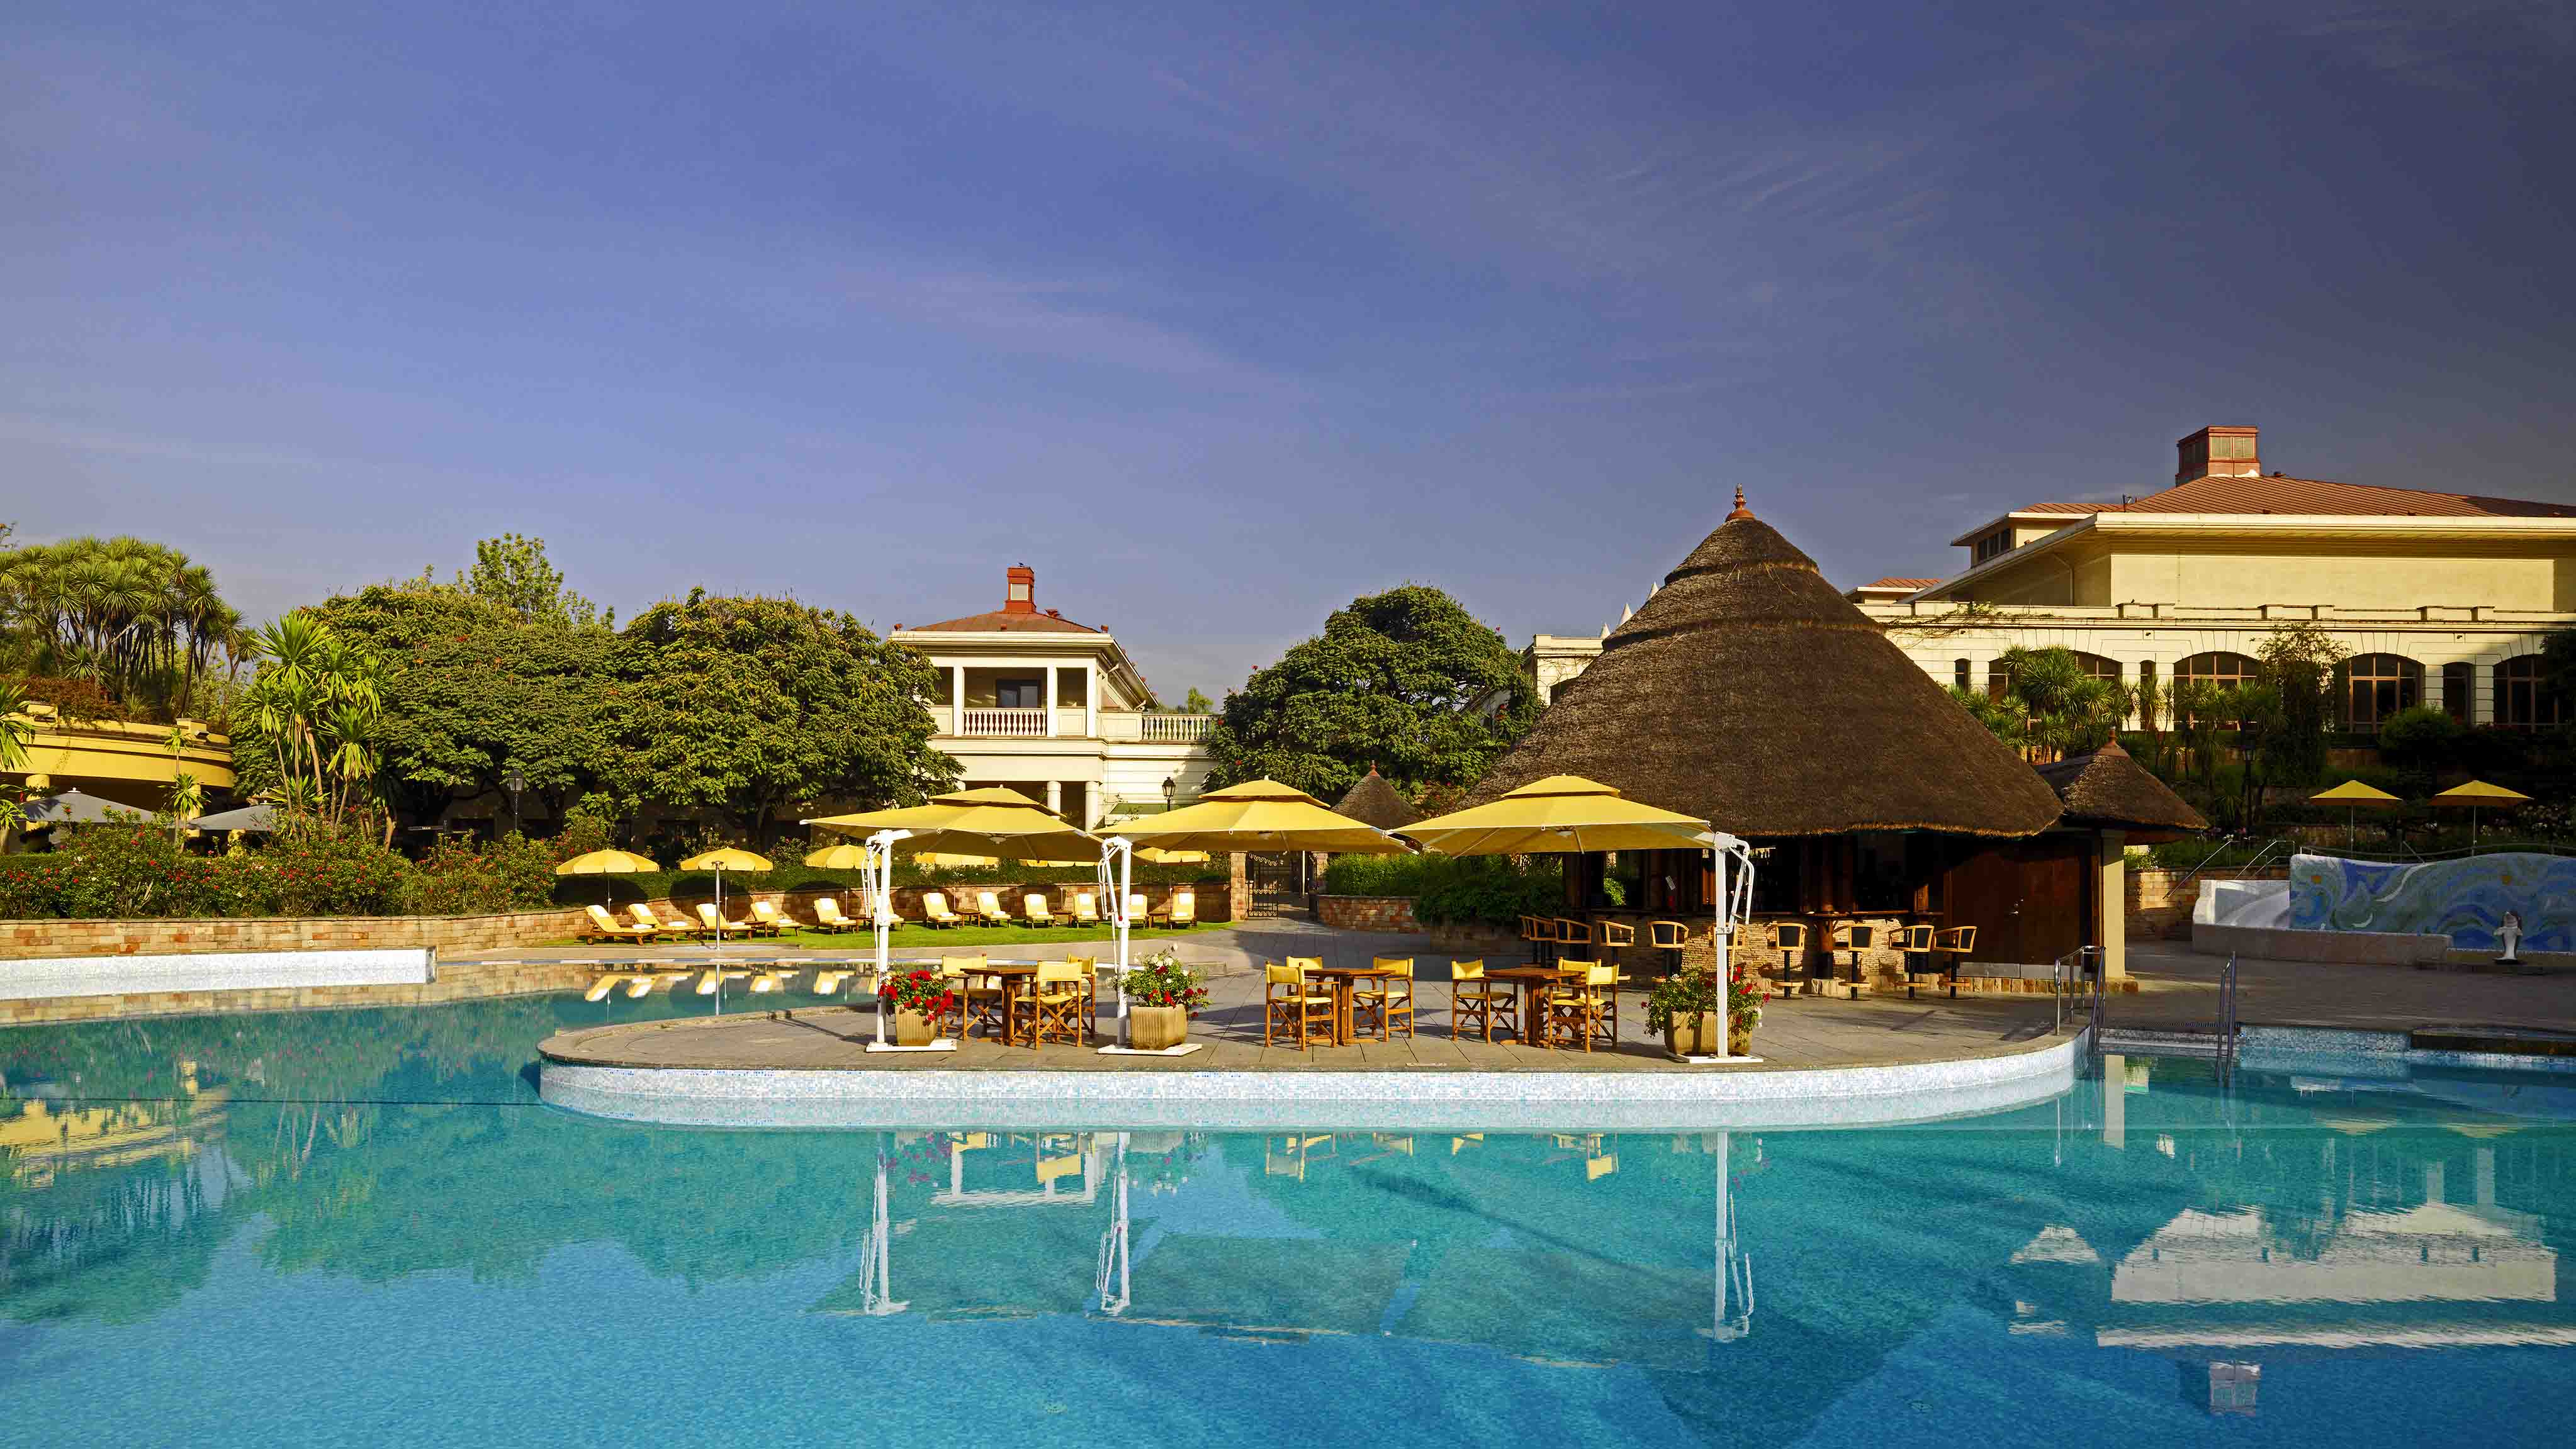 Sheraton Addis Swimming pool with thatched-roof restaurant and bar in background